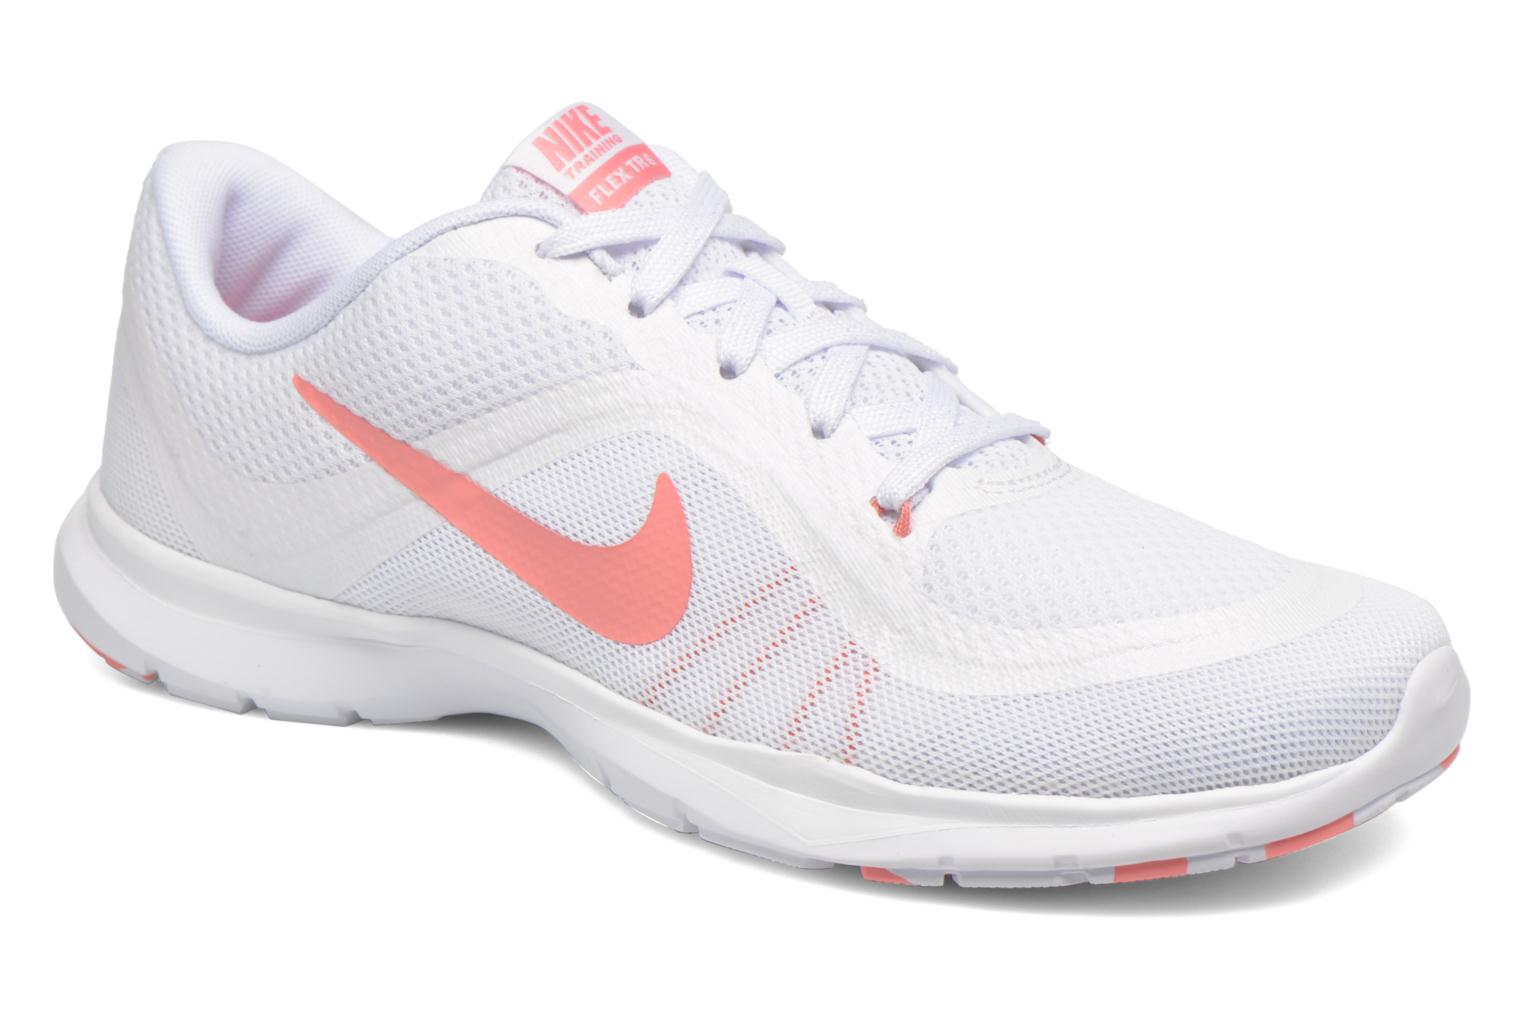 Wmns Nike Flex Trainer 6 Prem White/Bright Melon-Pure Platinum